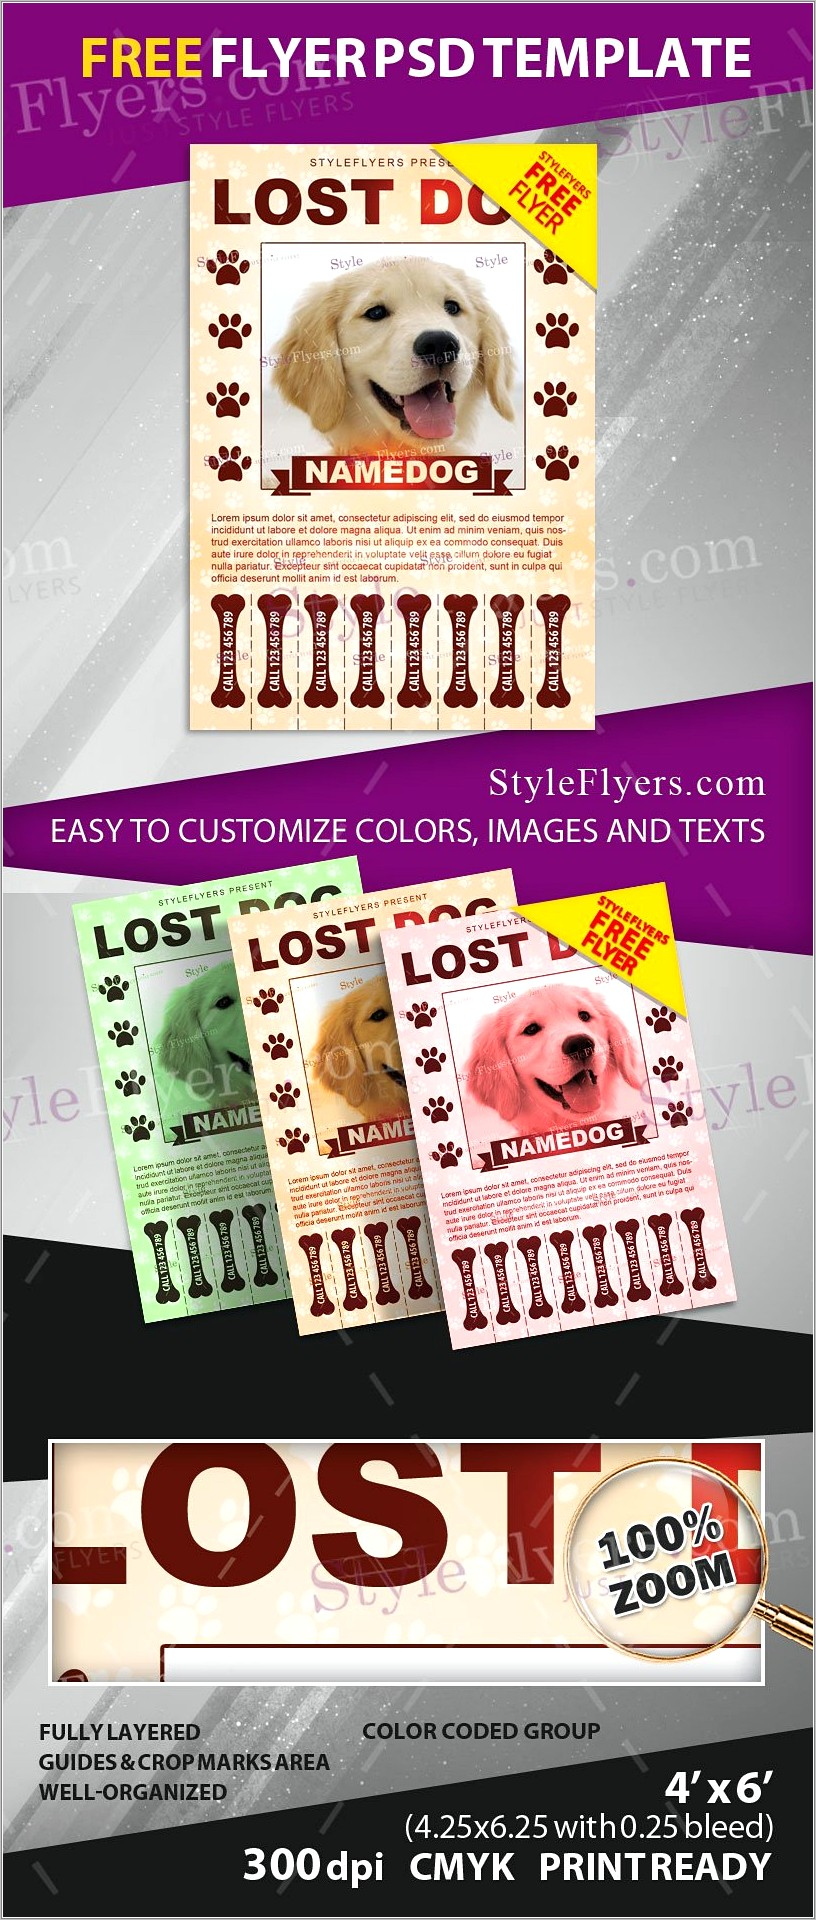 Lost Dog Template Free